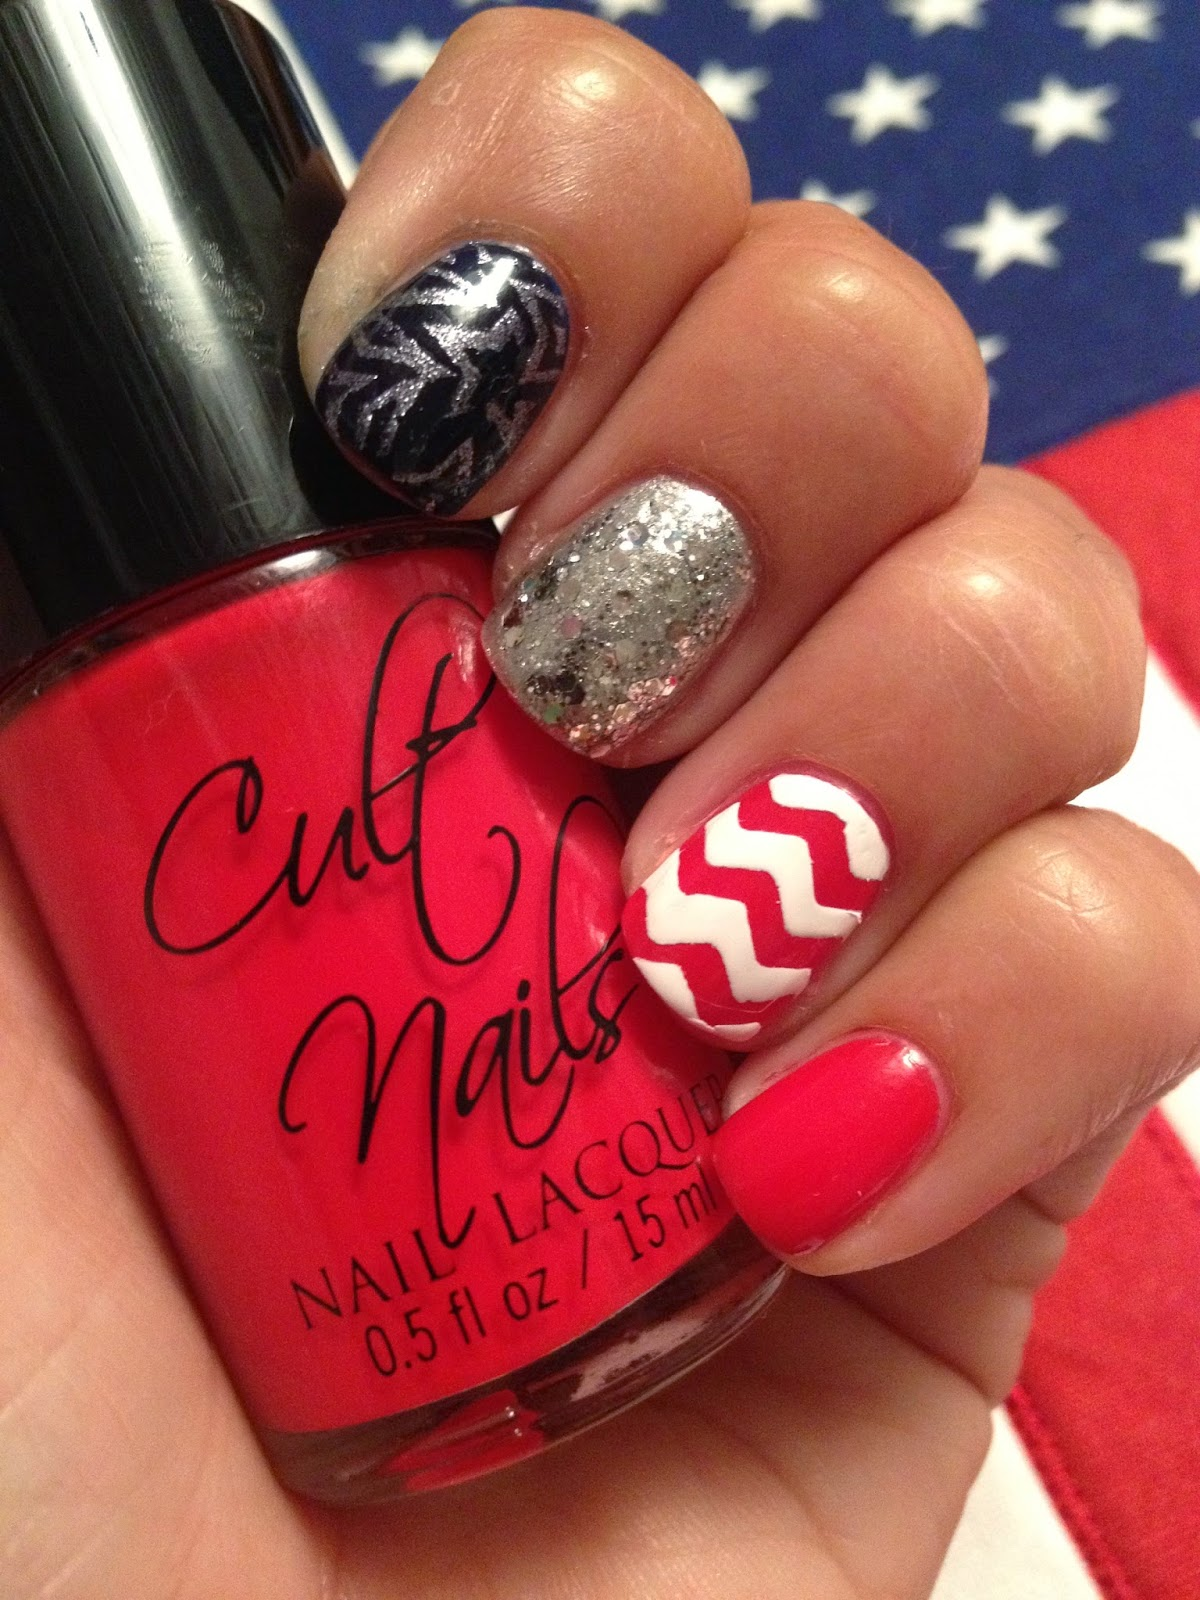 Cult Nails Blog: June 2014